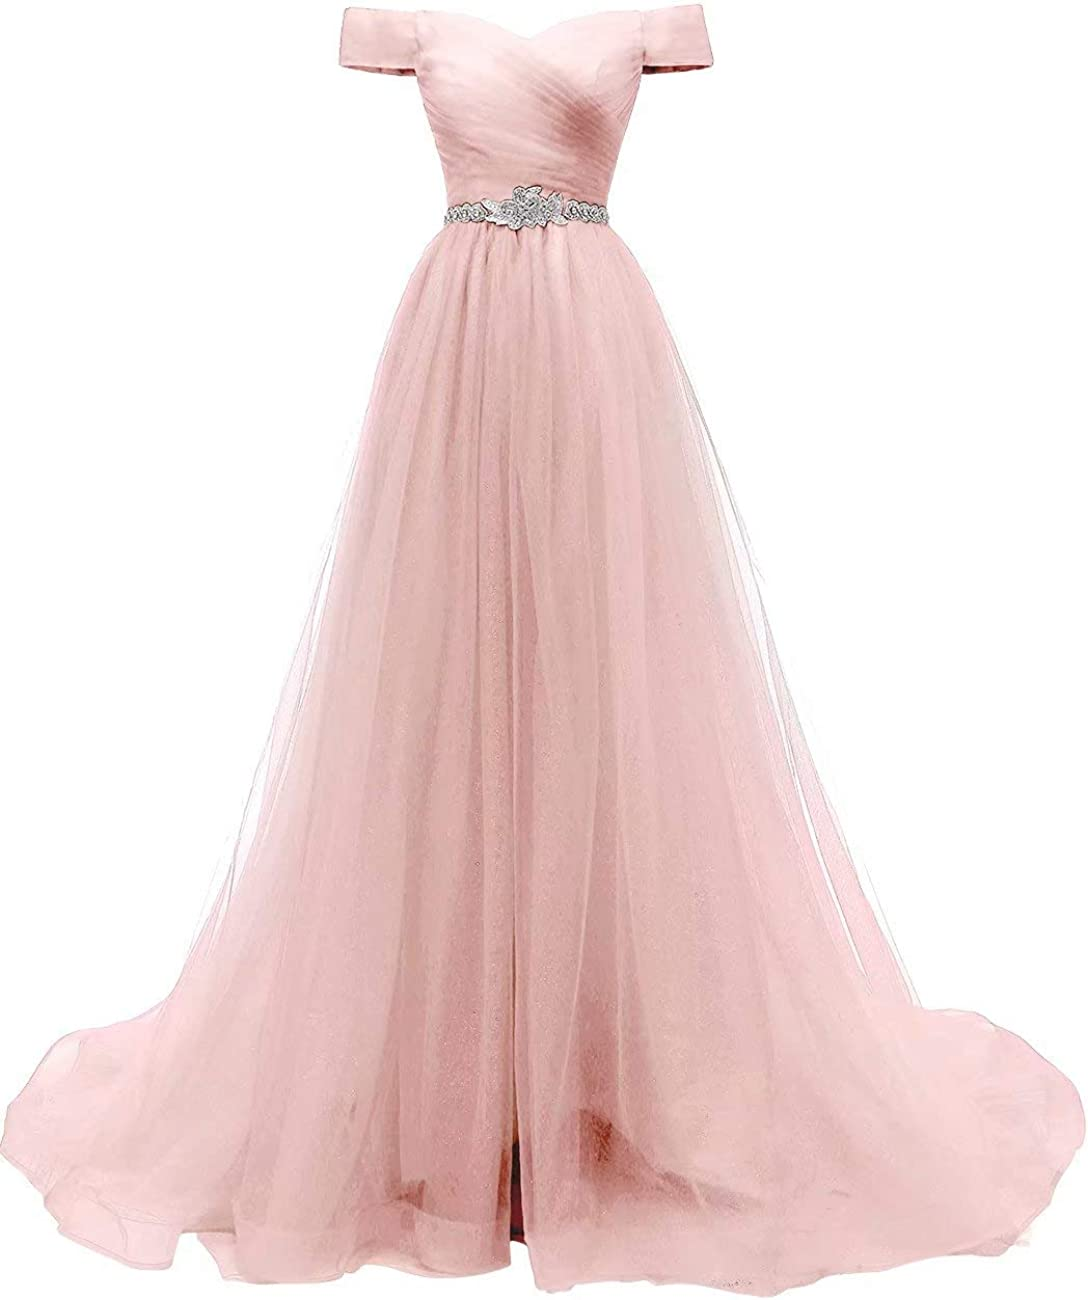 the Shoulder Formal Evening Ball Gown